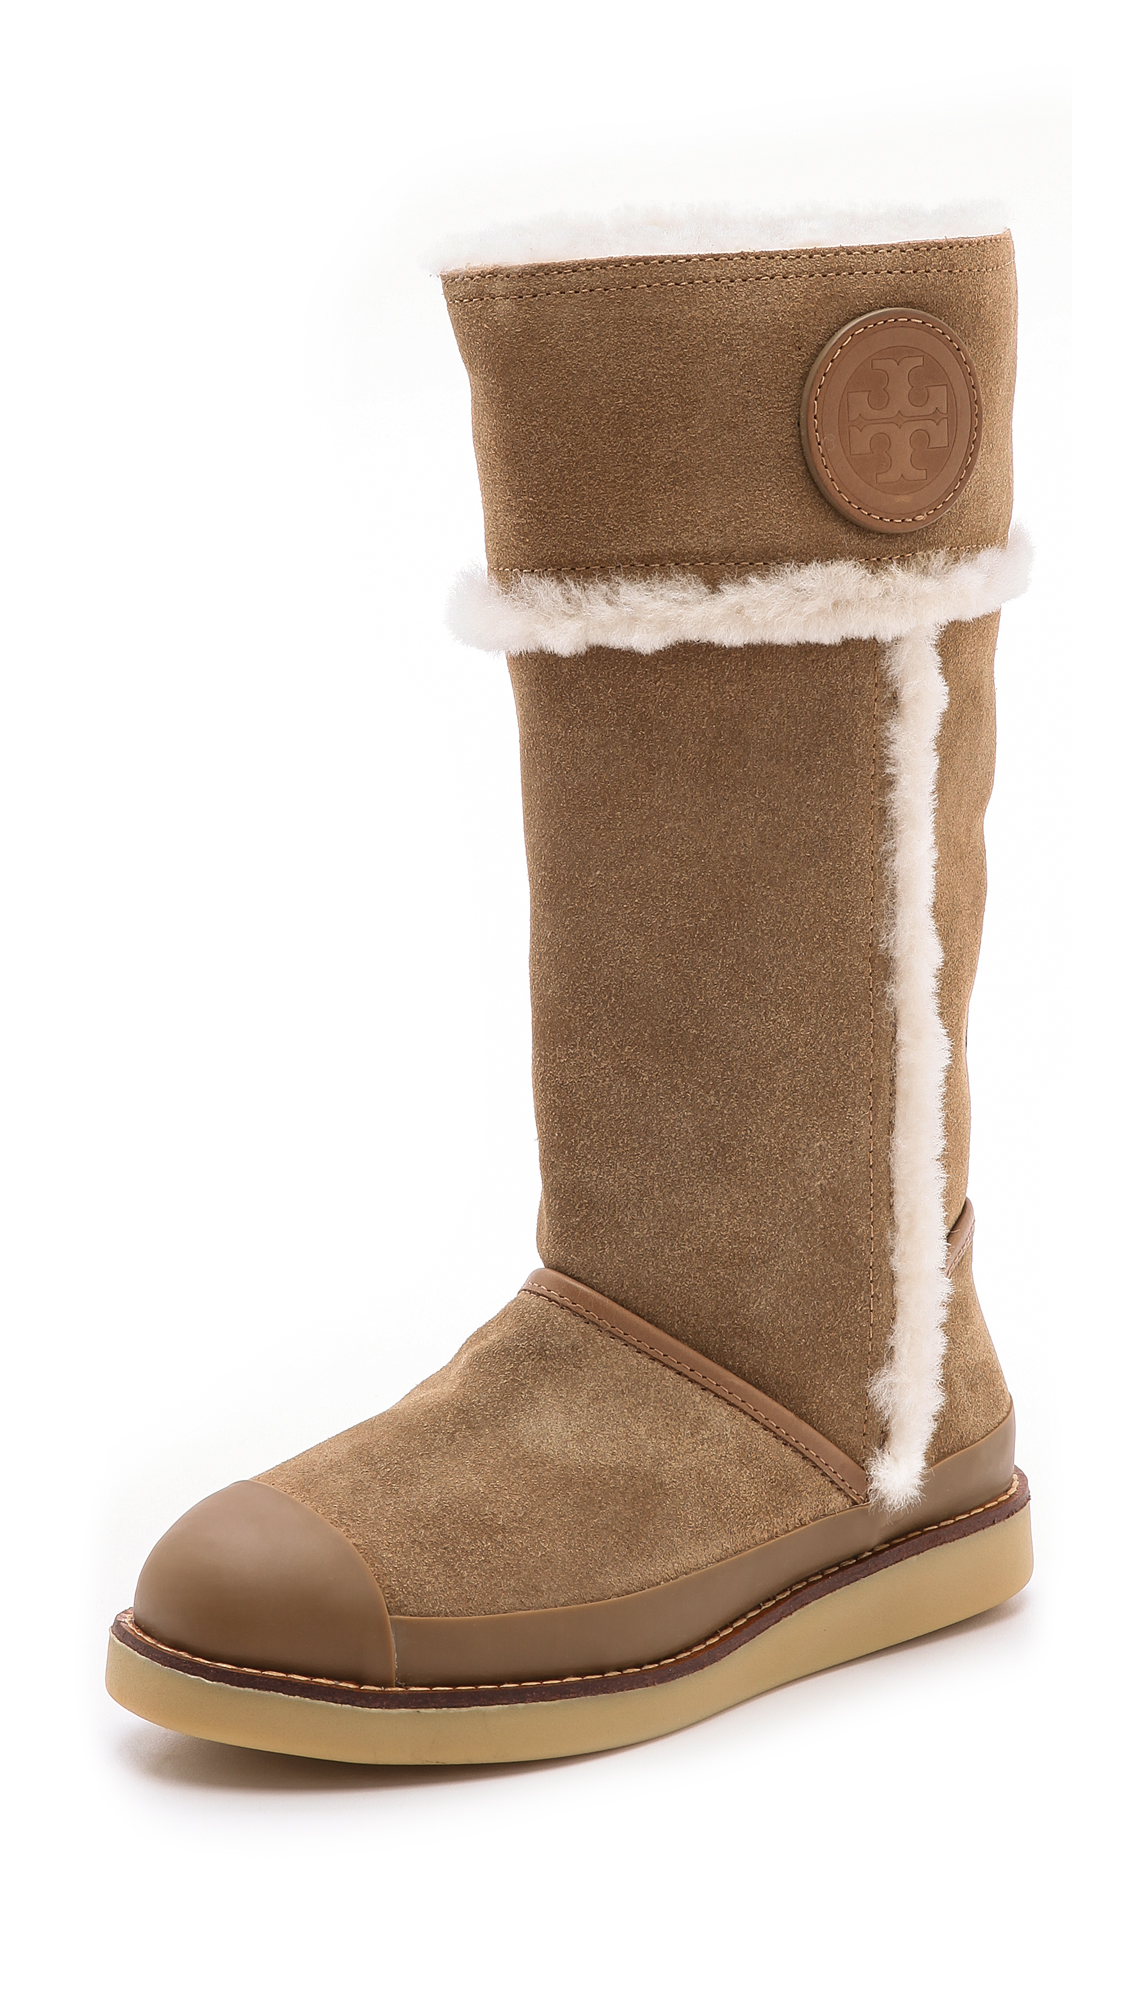 Lyst Tory Burch Nadine Mid Shaft Boots In Brown